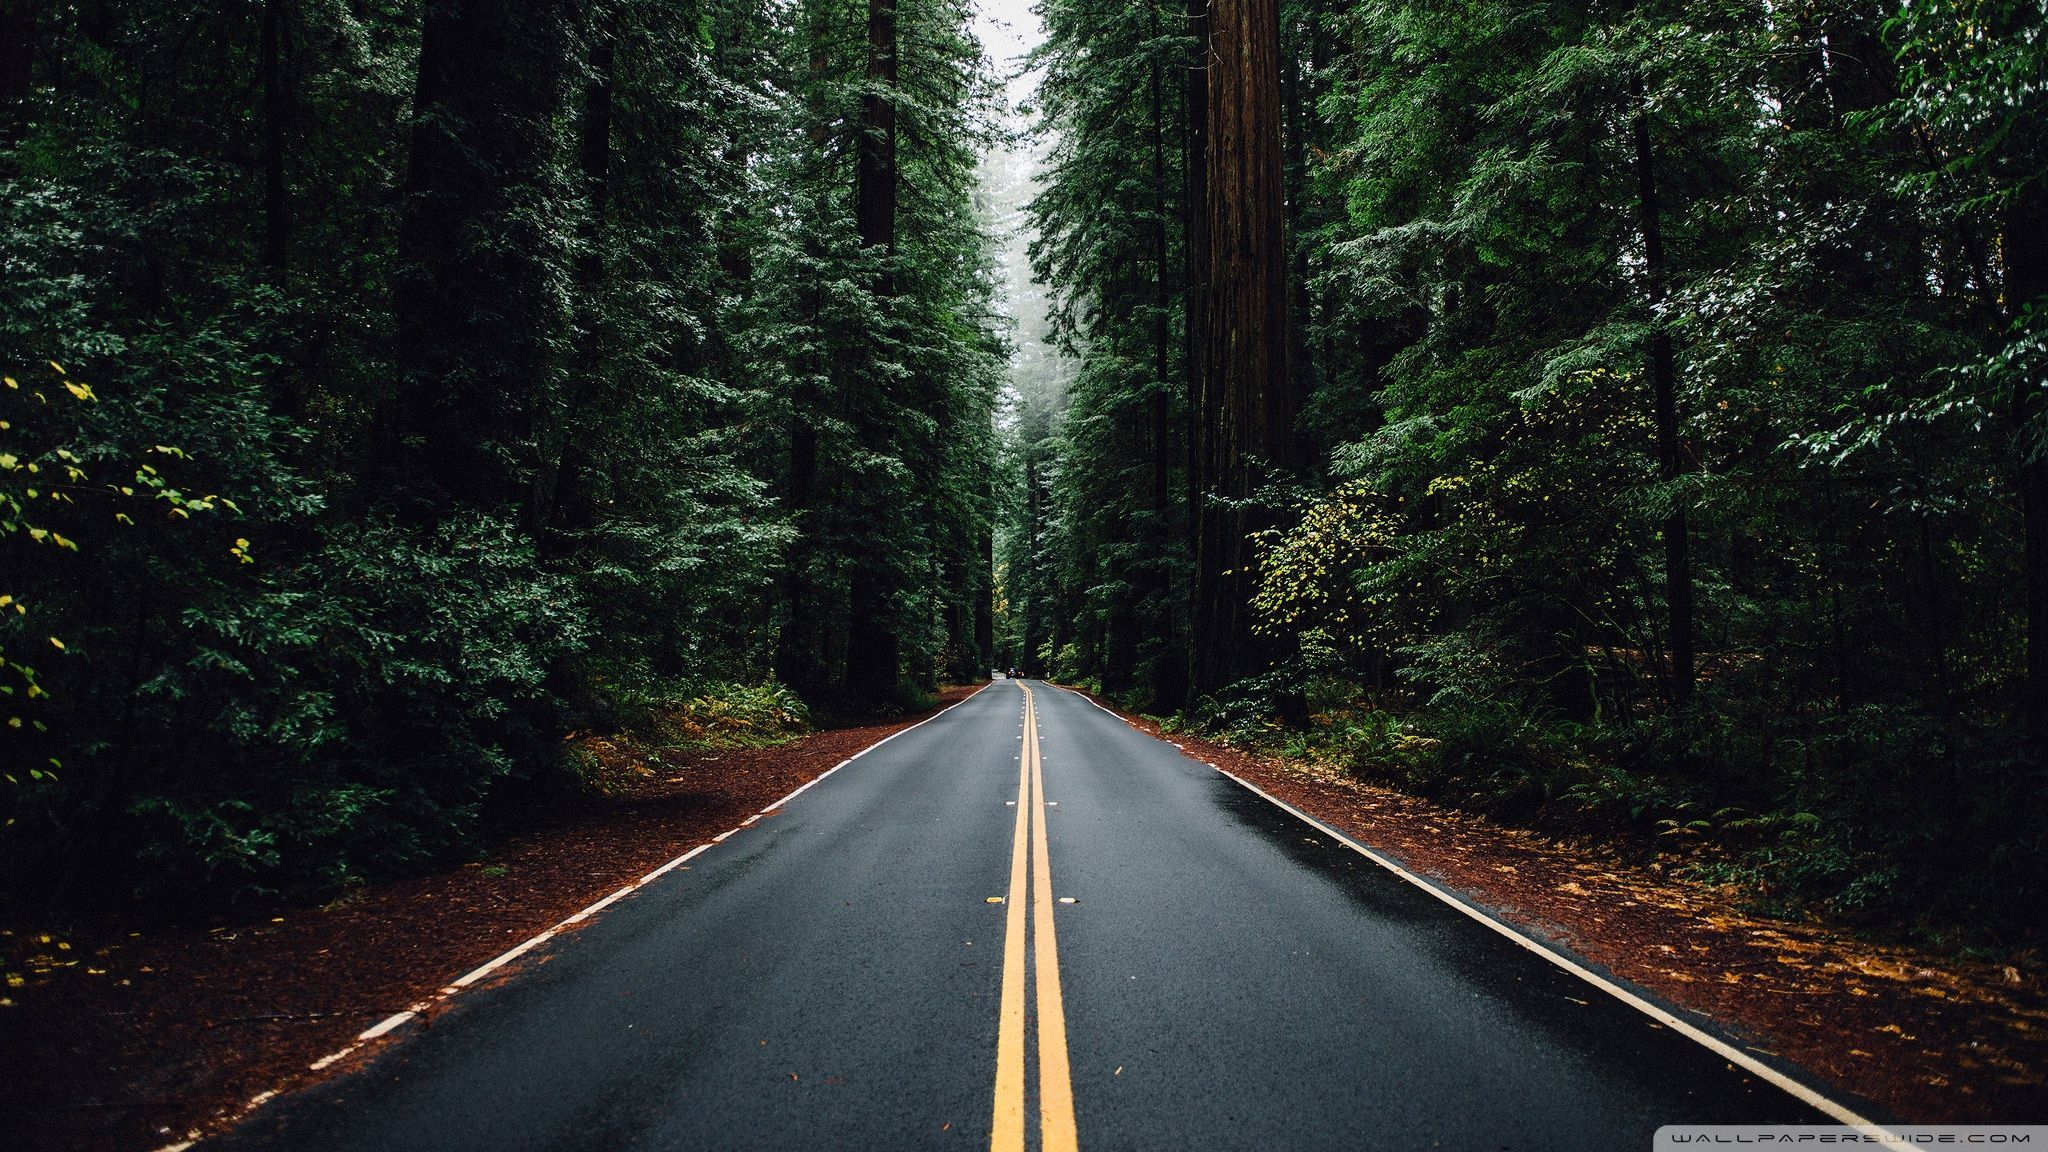 Beautiful Roads Wallpapers Top Free Beautiful Roads Backgrounds Images, Photos, Reviews